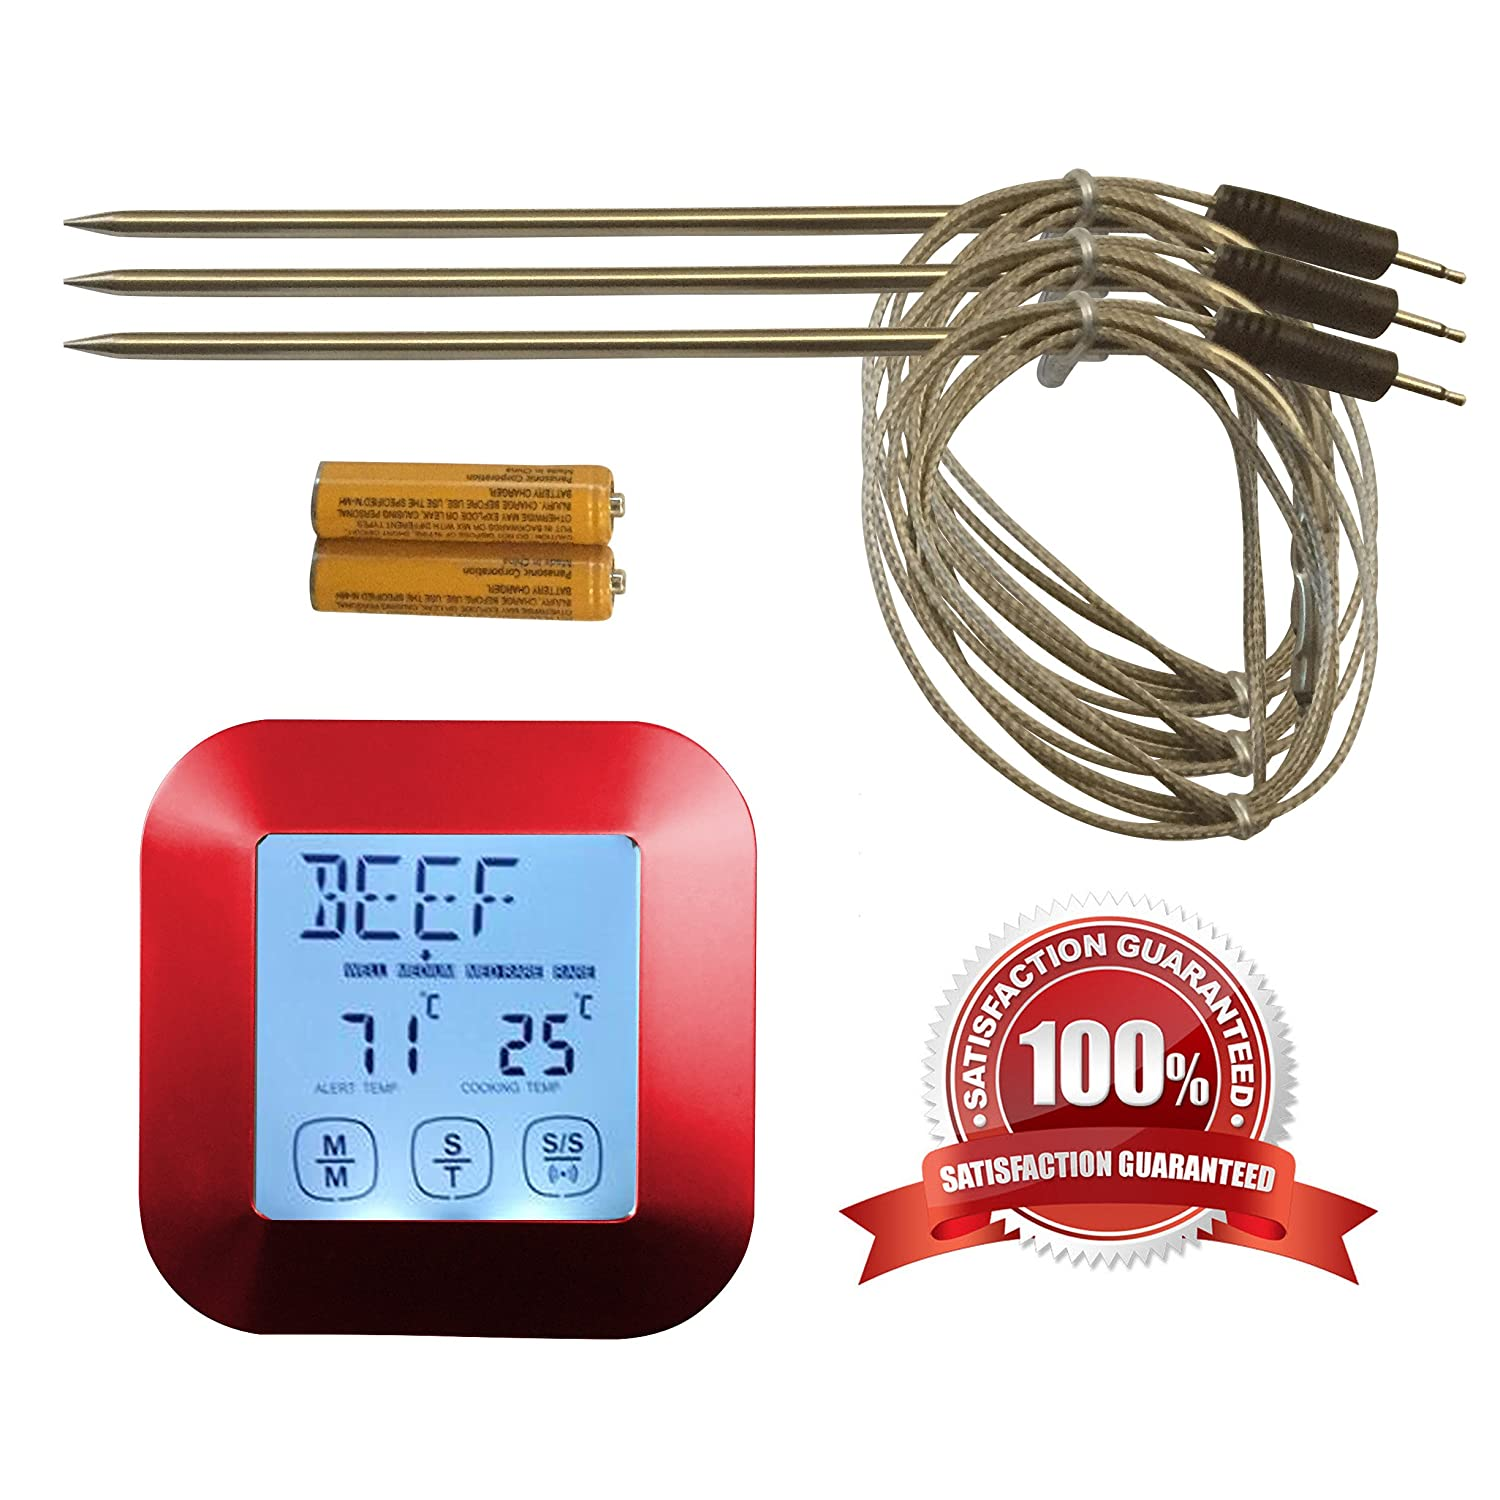 The Clever Life Digital Meat Thermometer Review